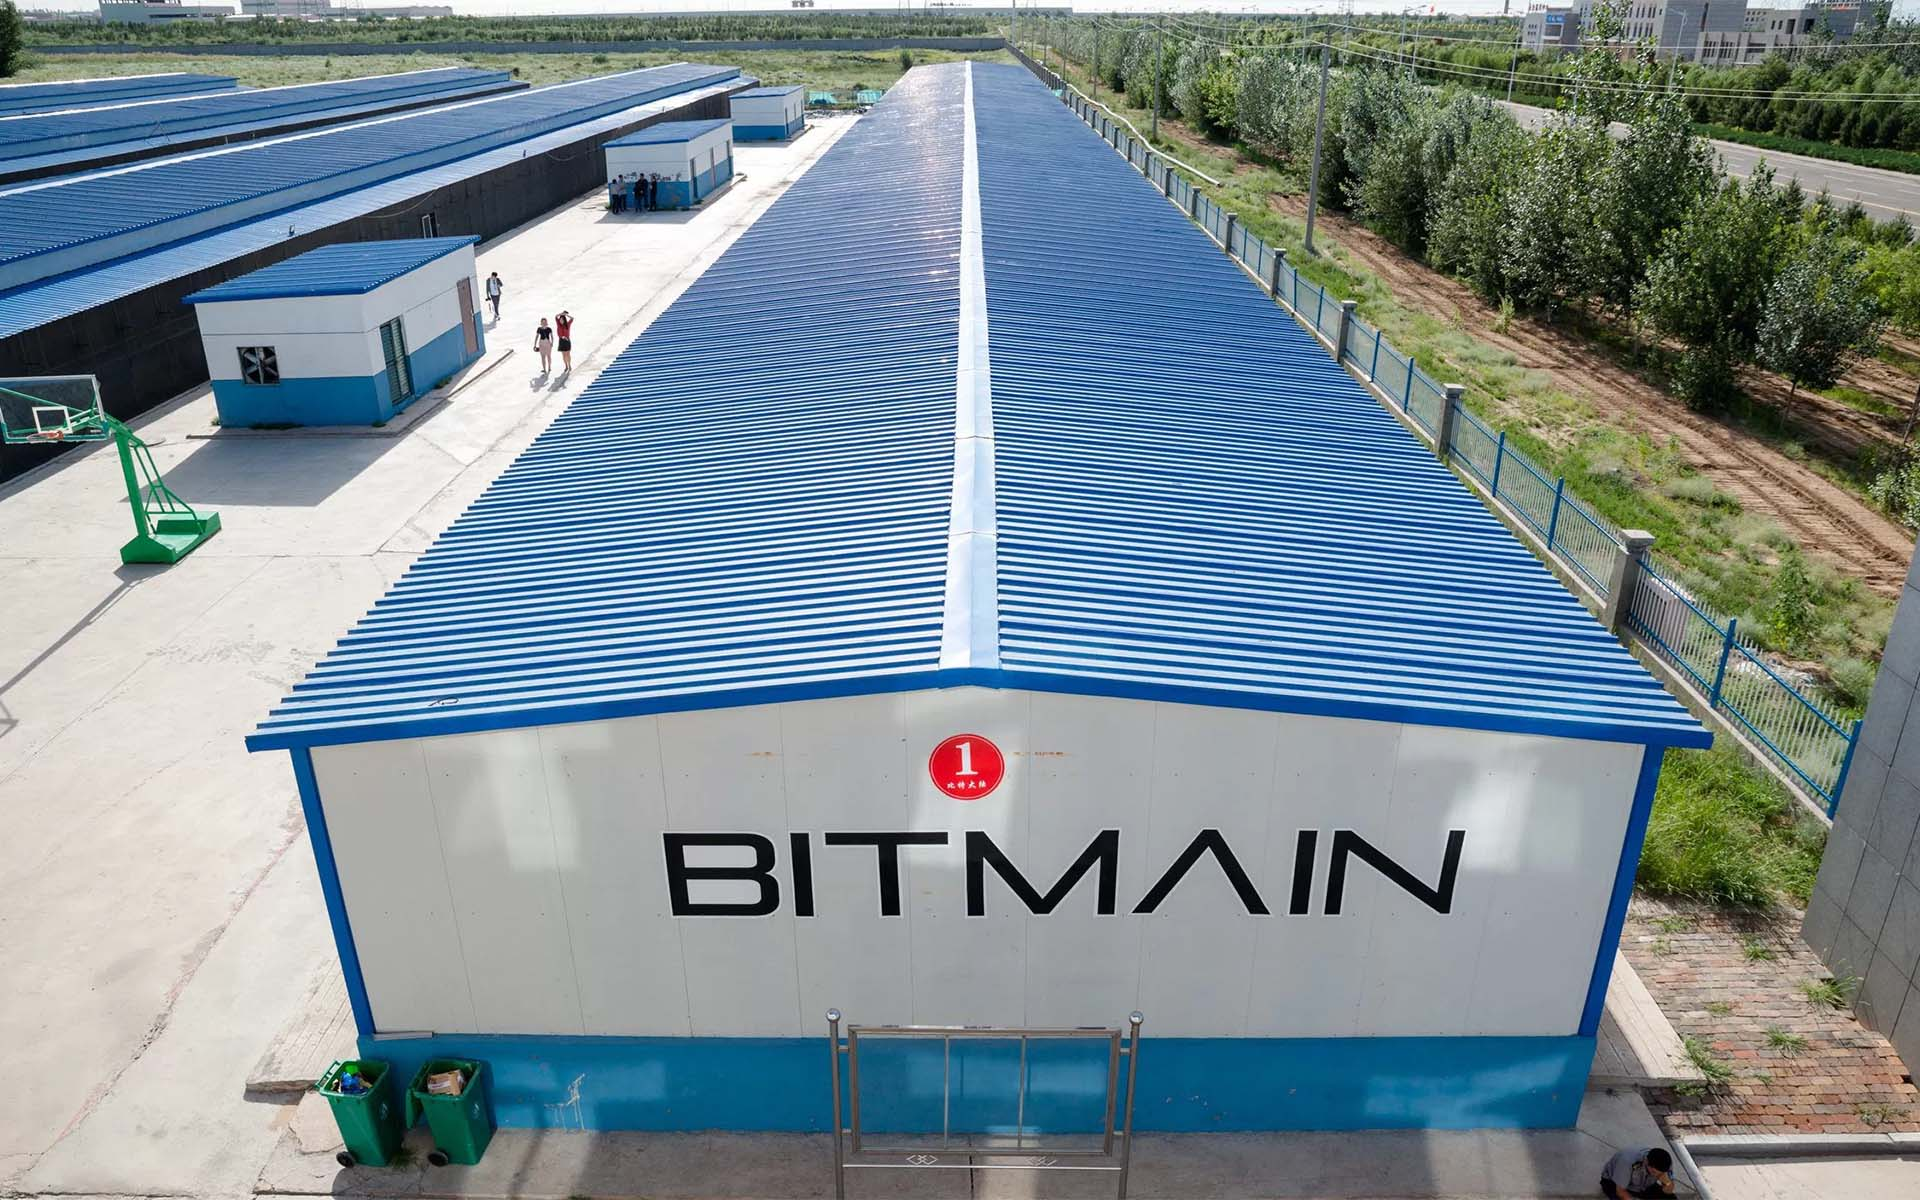 Bitmain Unveils New 7nm ASIC Chip After Dismal 2018